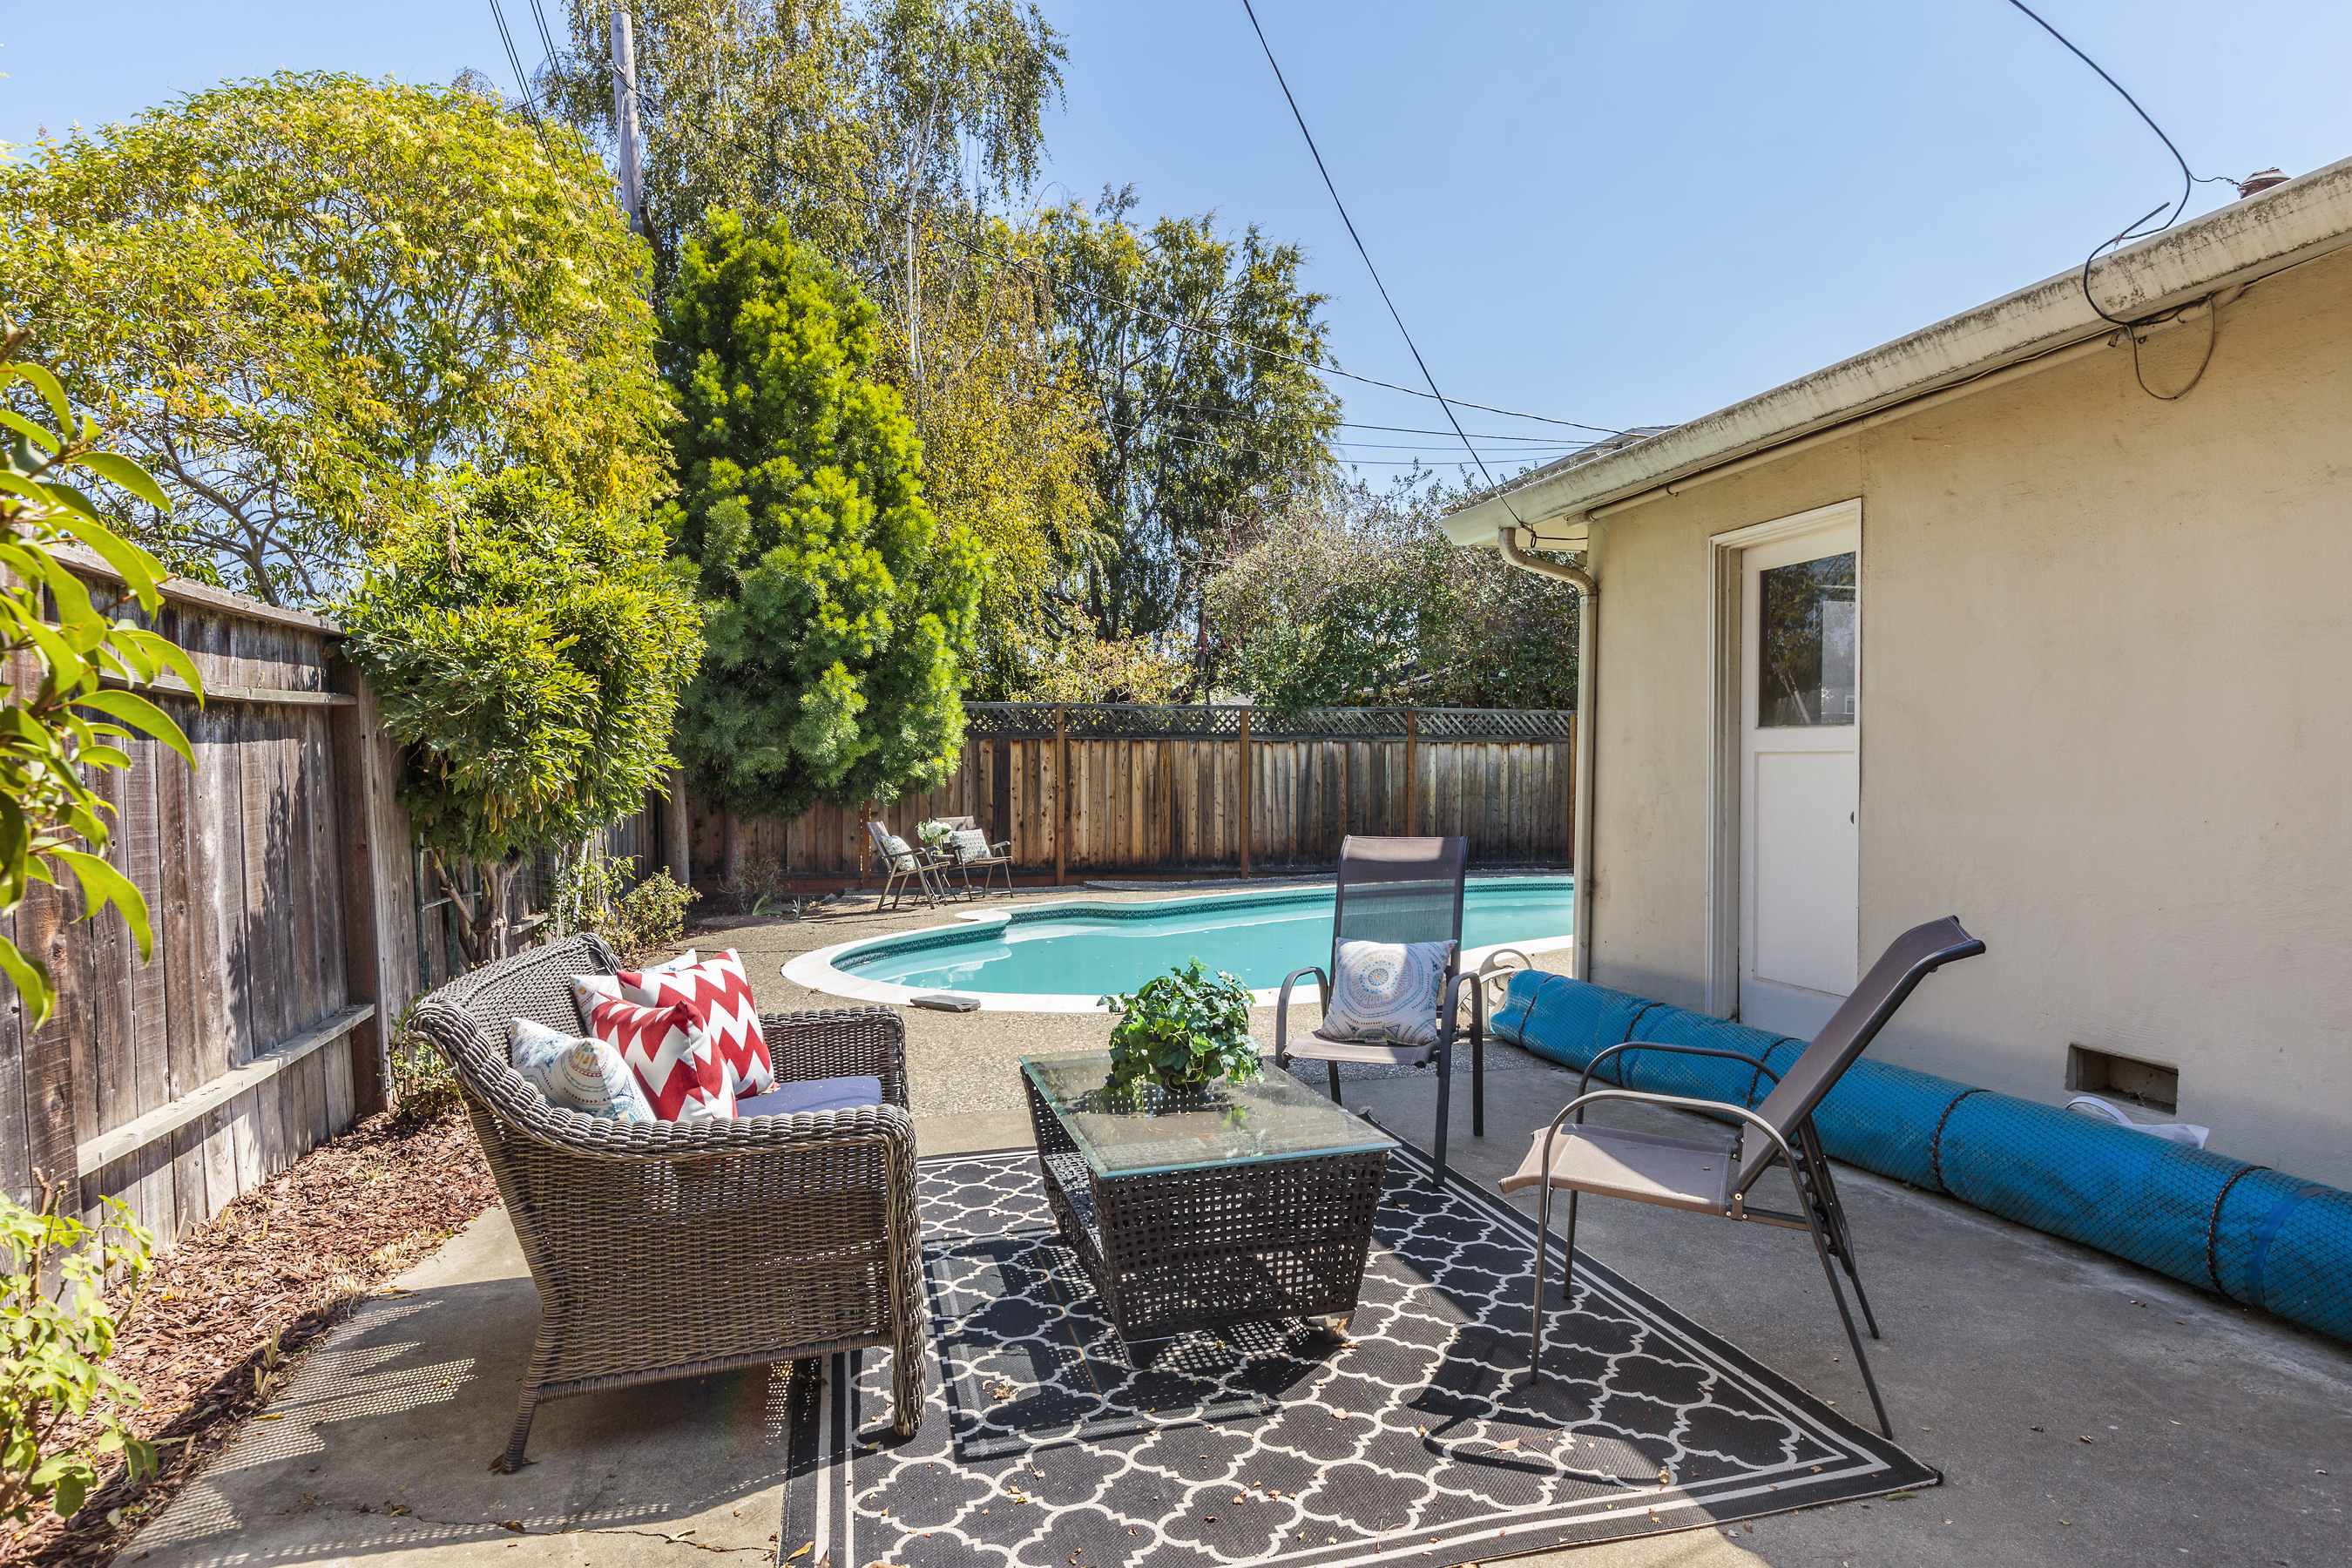 22-3115AlamedaDeLasPulgas-patio-high-res